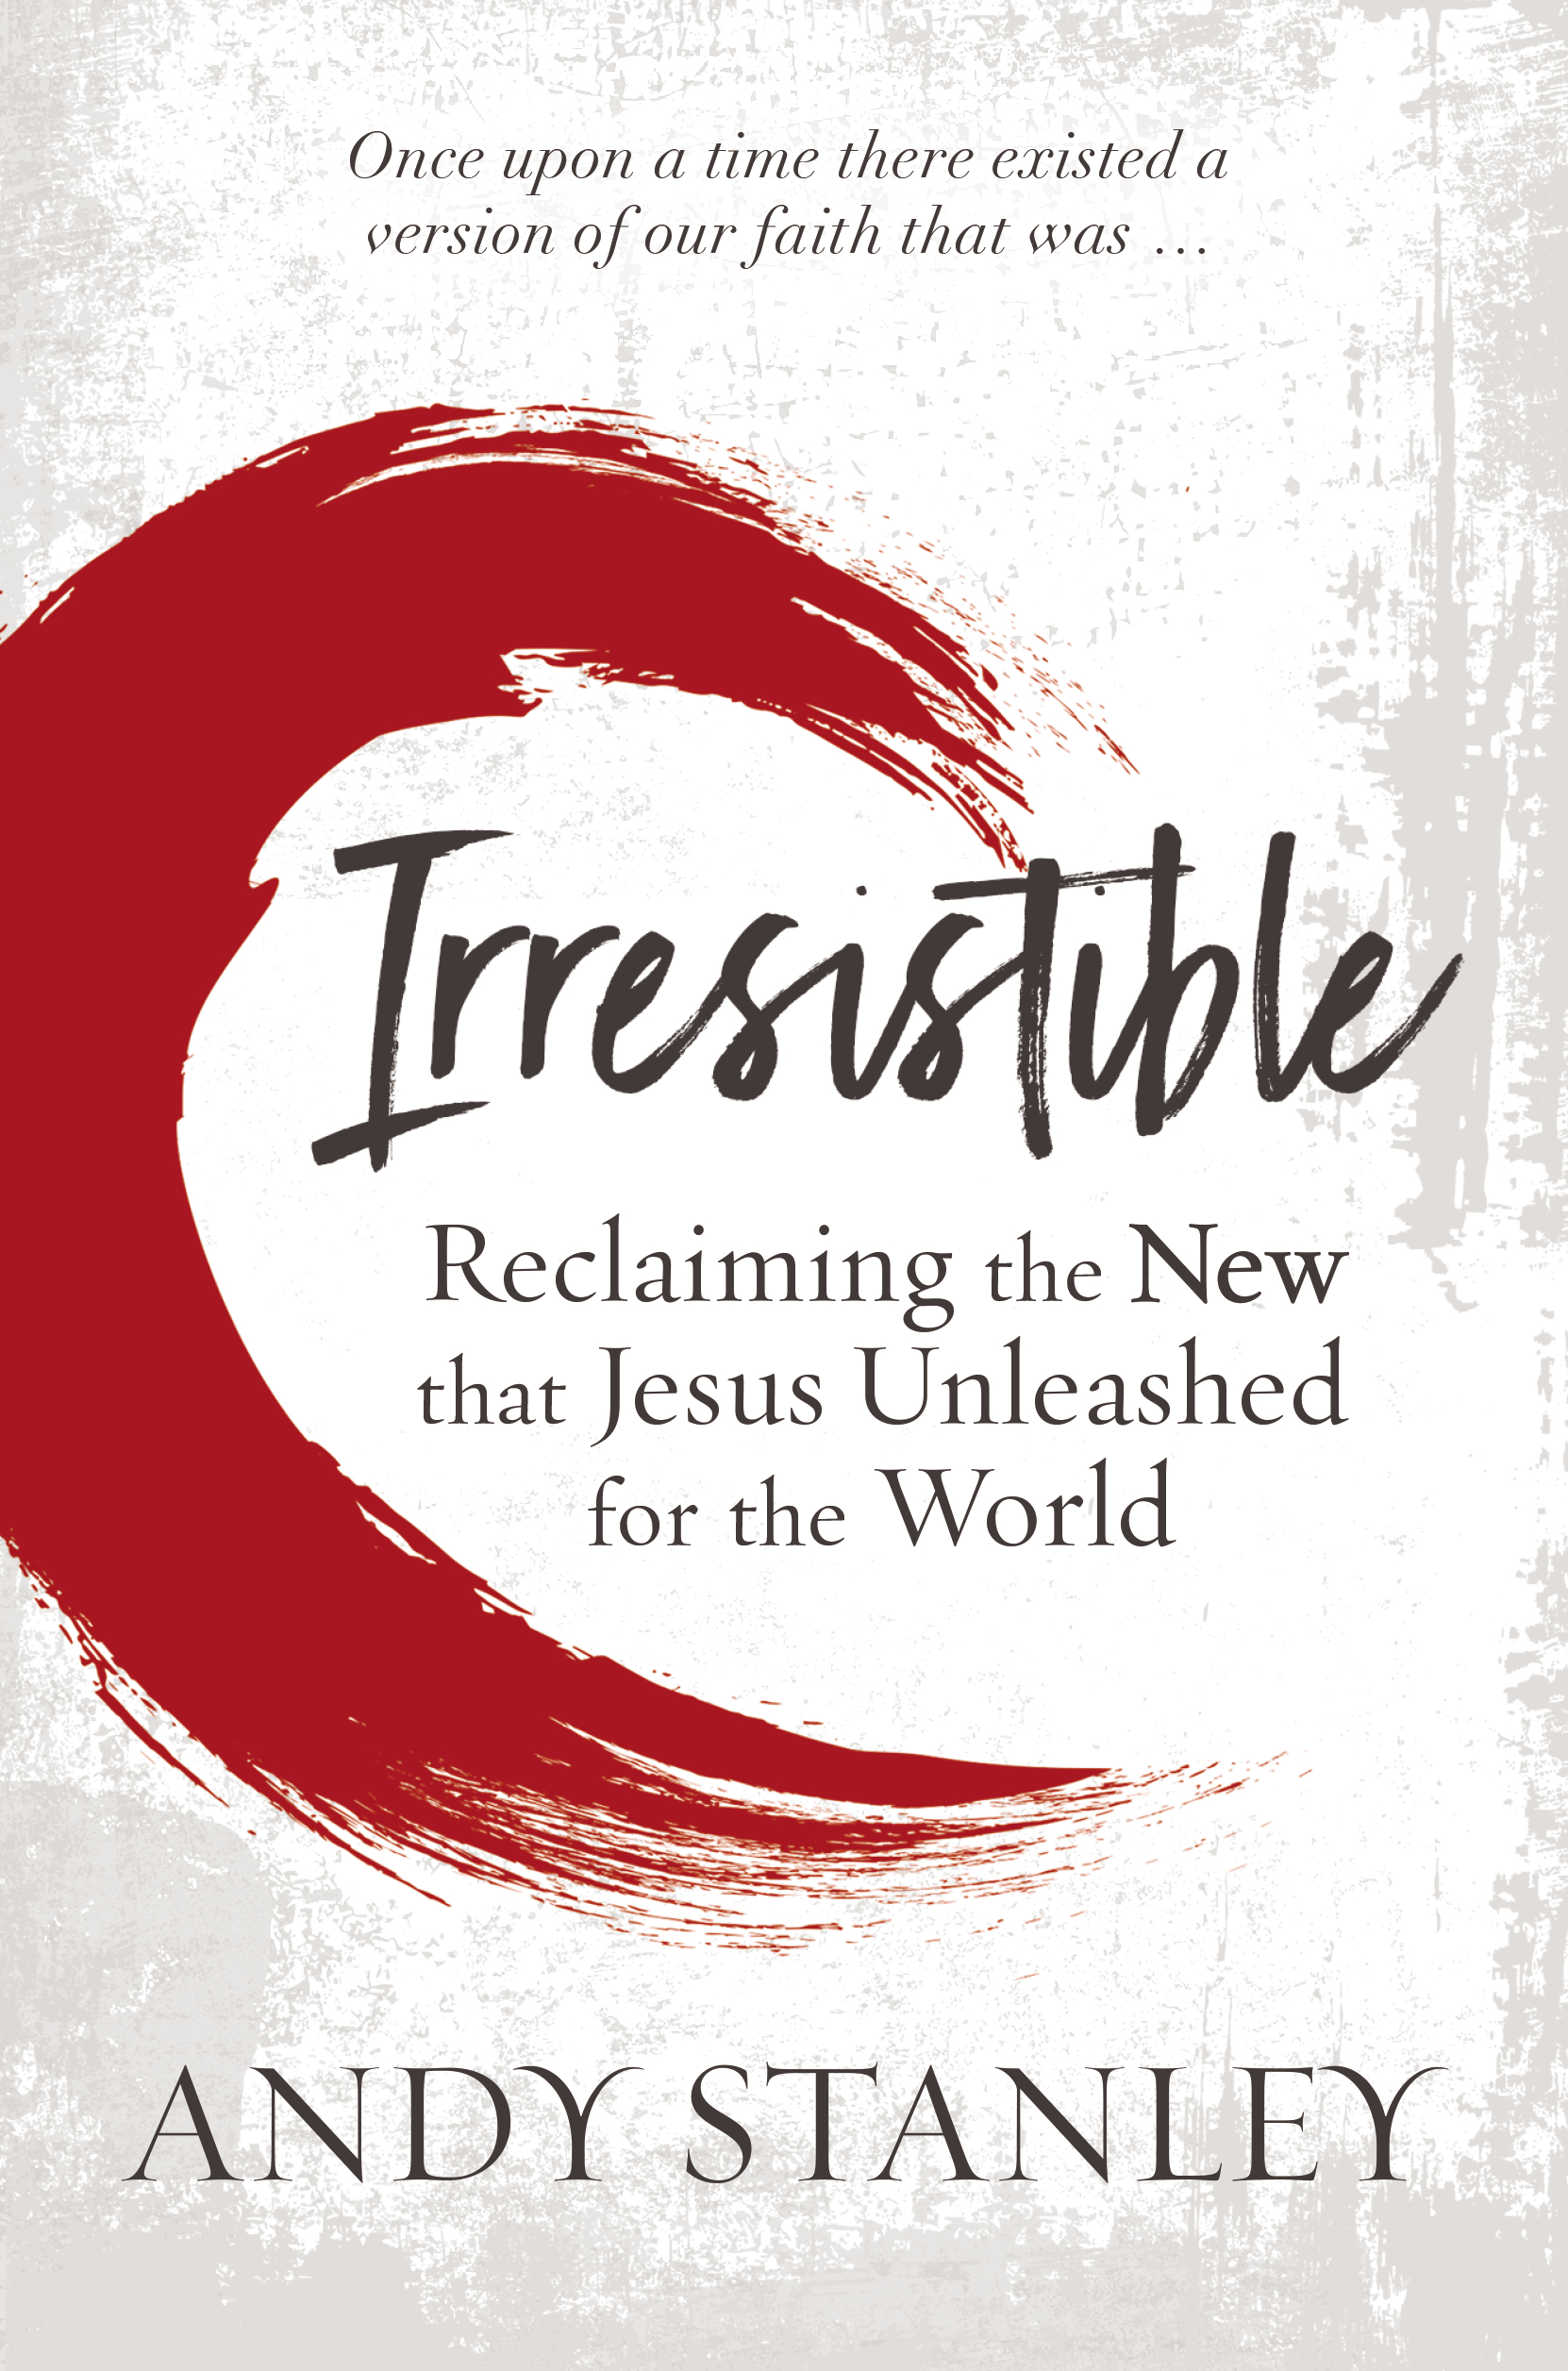 Andy Stanley's new book, Irresistible: Reclaiming the New that Jesus Unleashed for the World